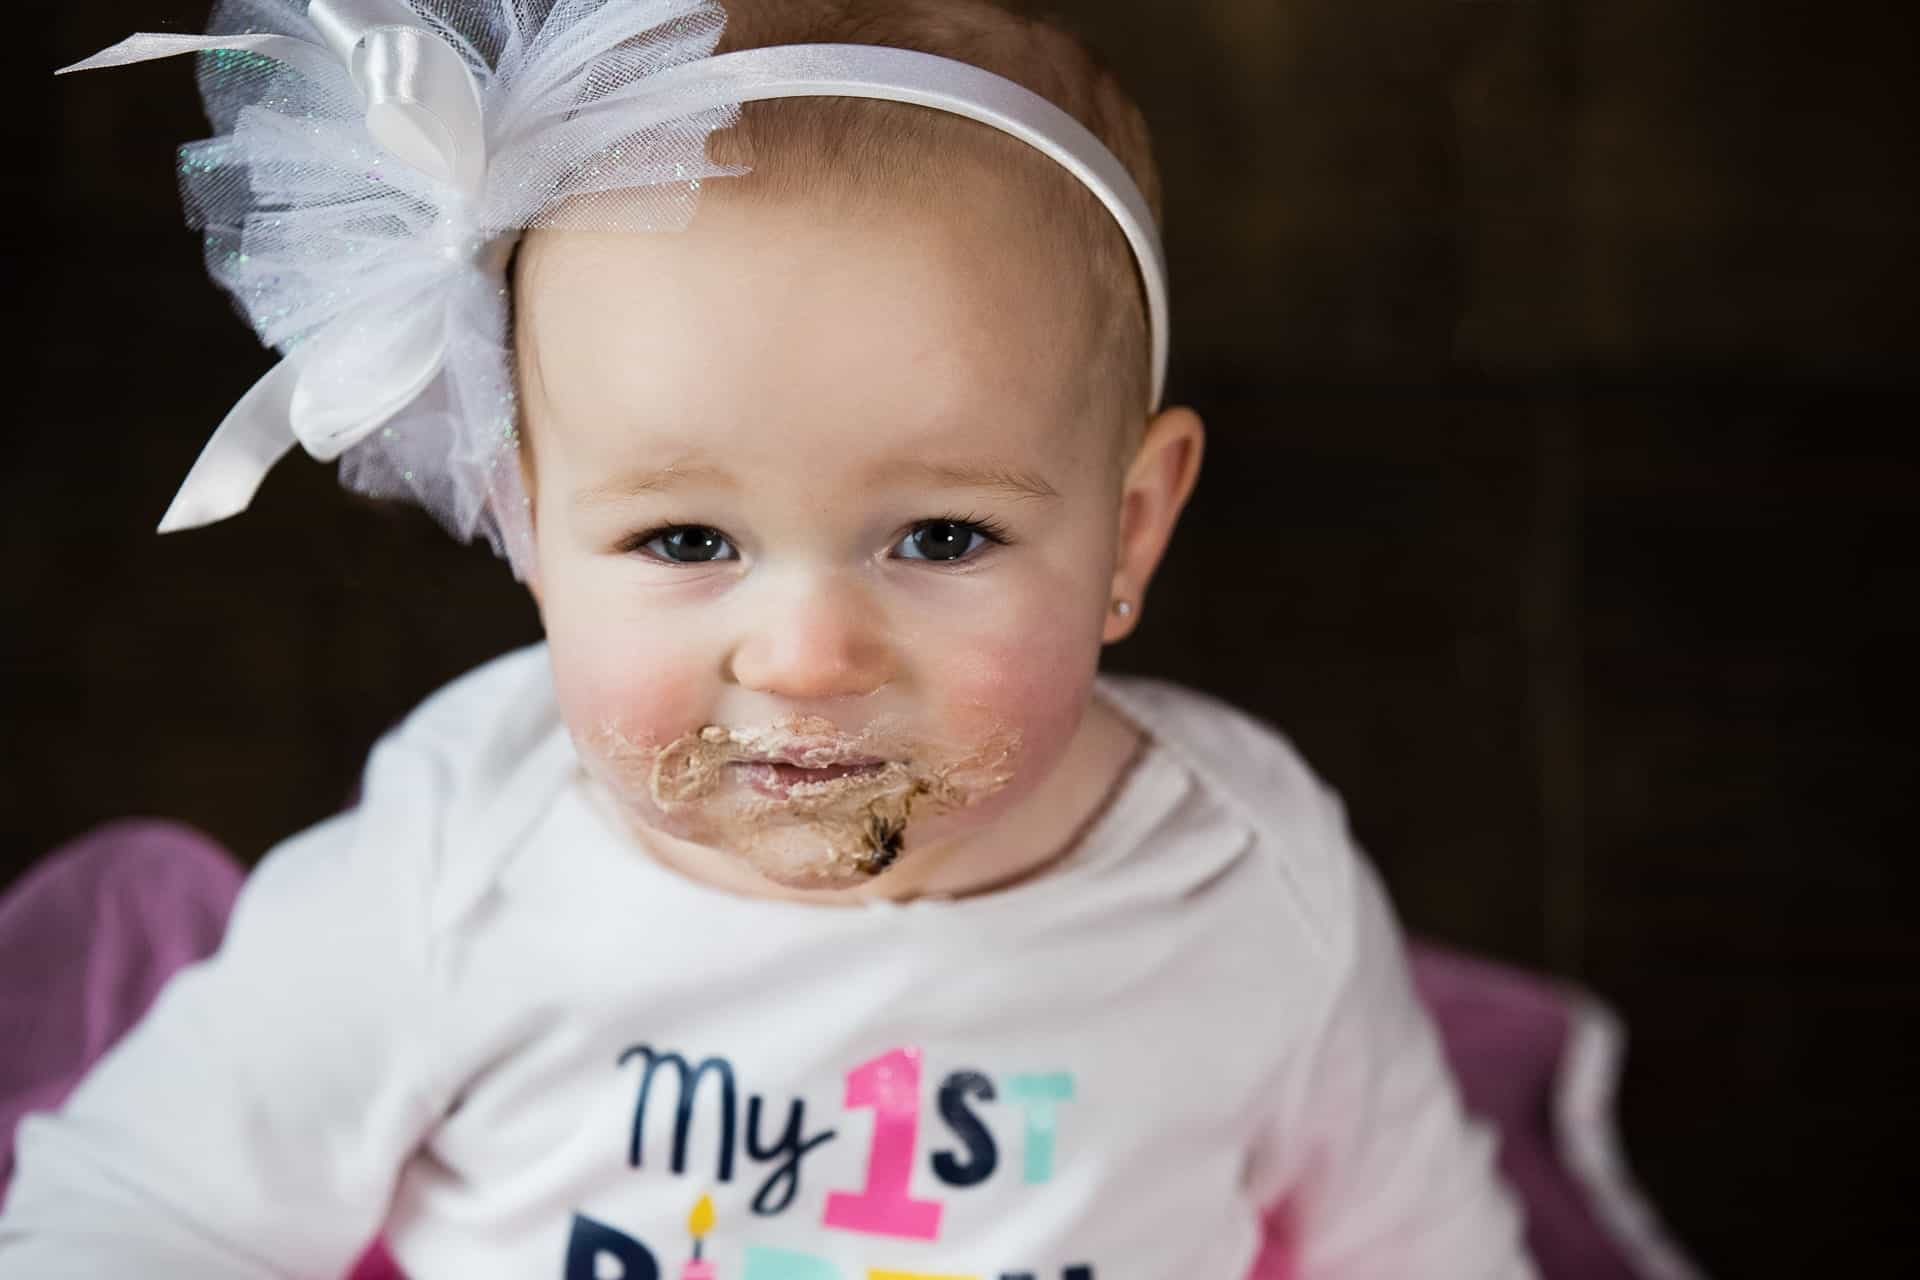 Baby girl looking at camera with chocolate all over her face